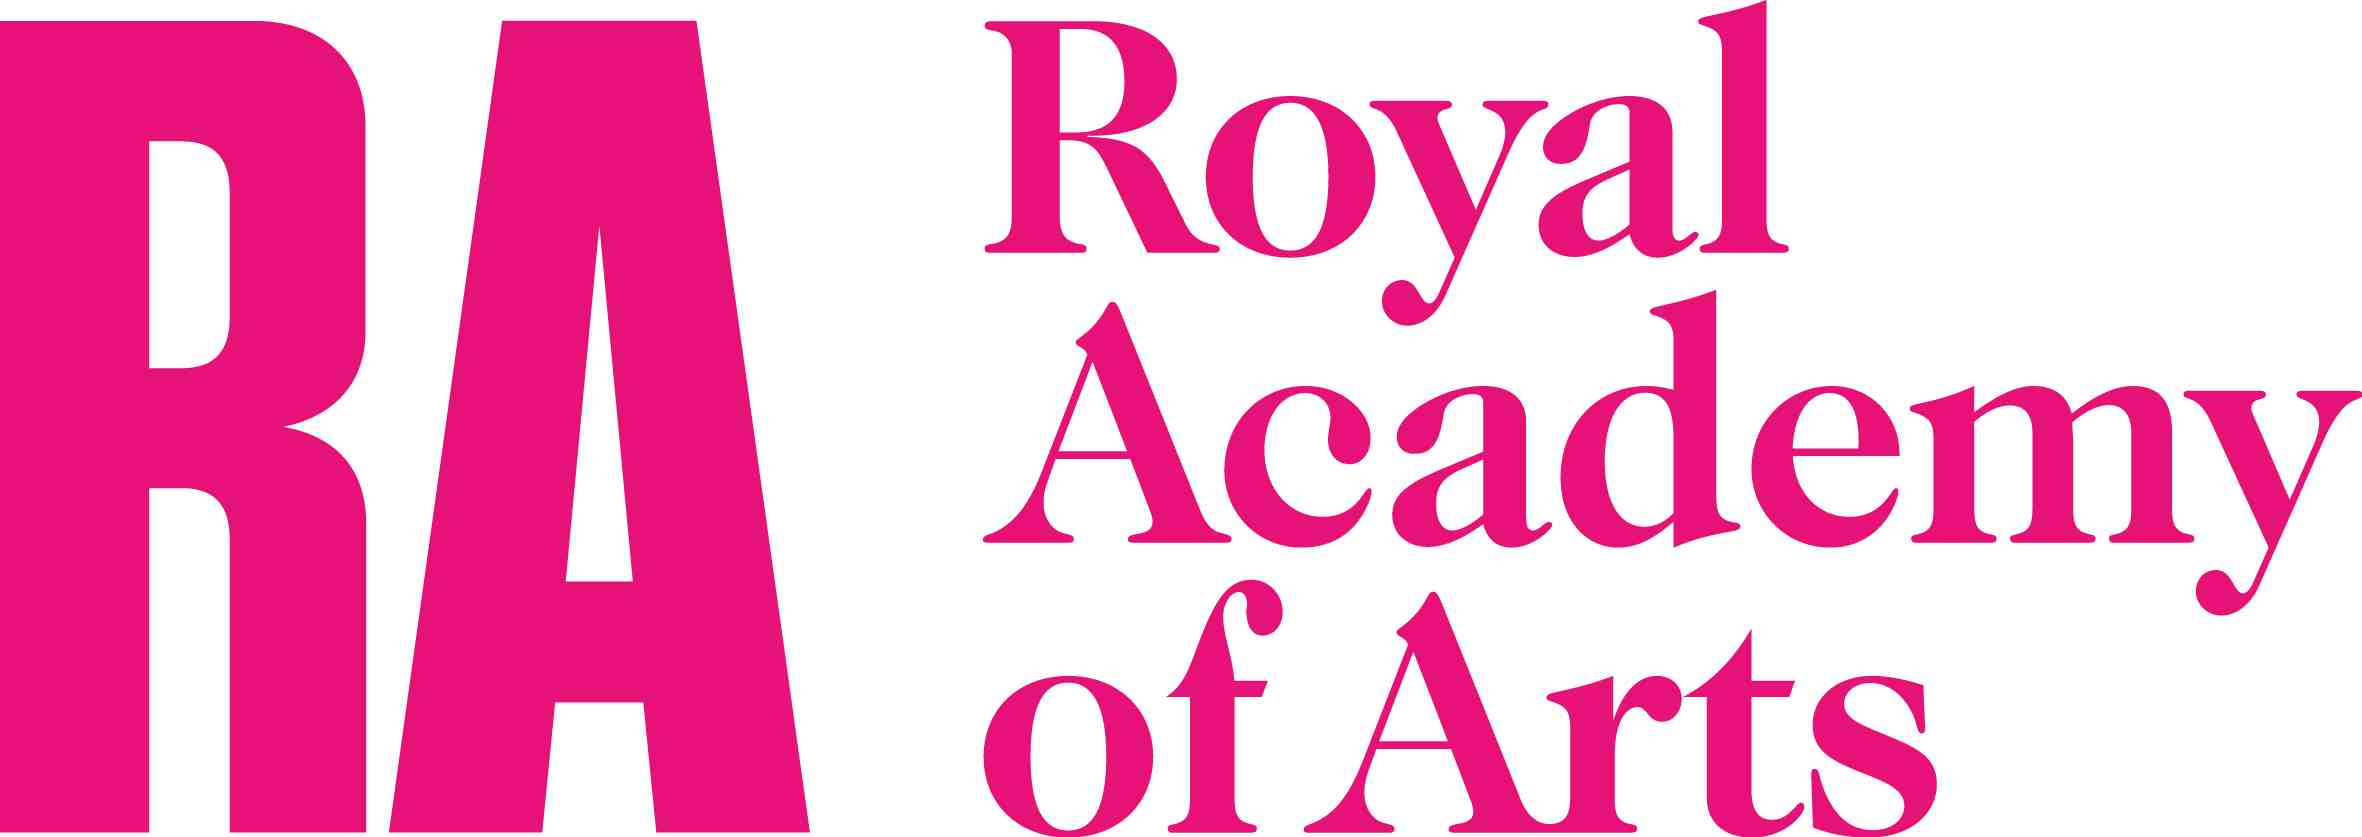 Royal Academy of Arts logo lockup BLK